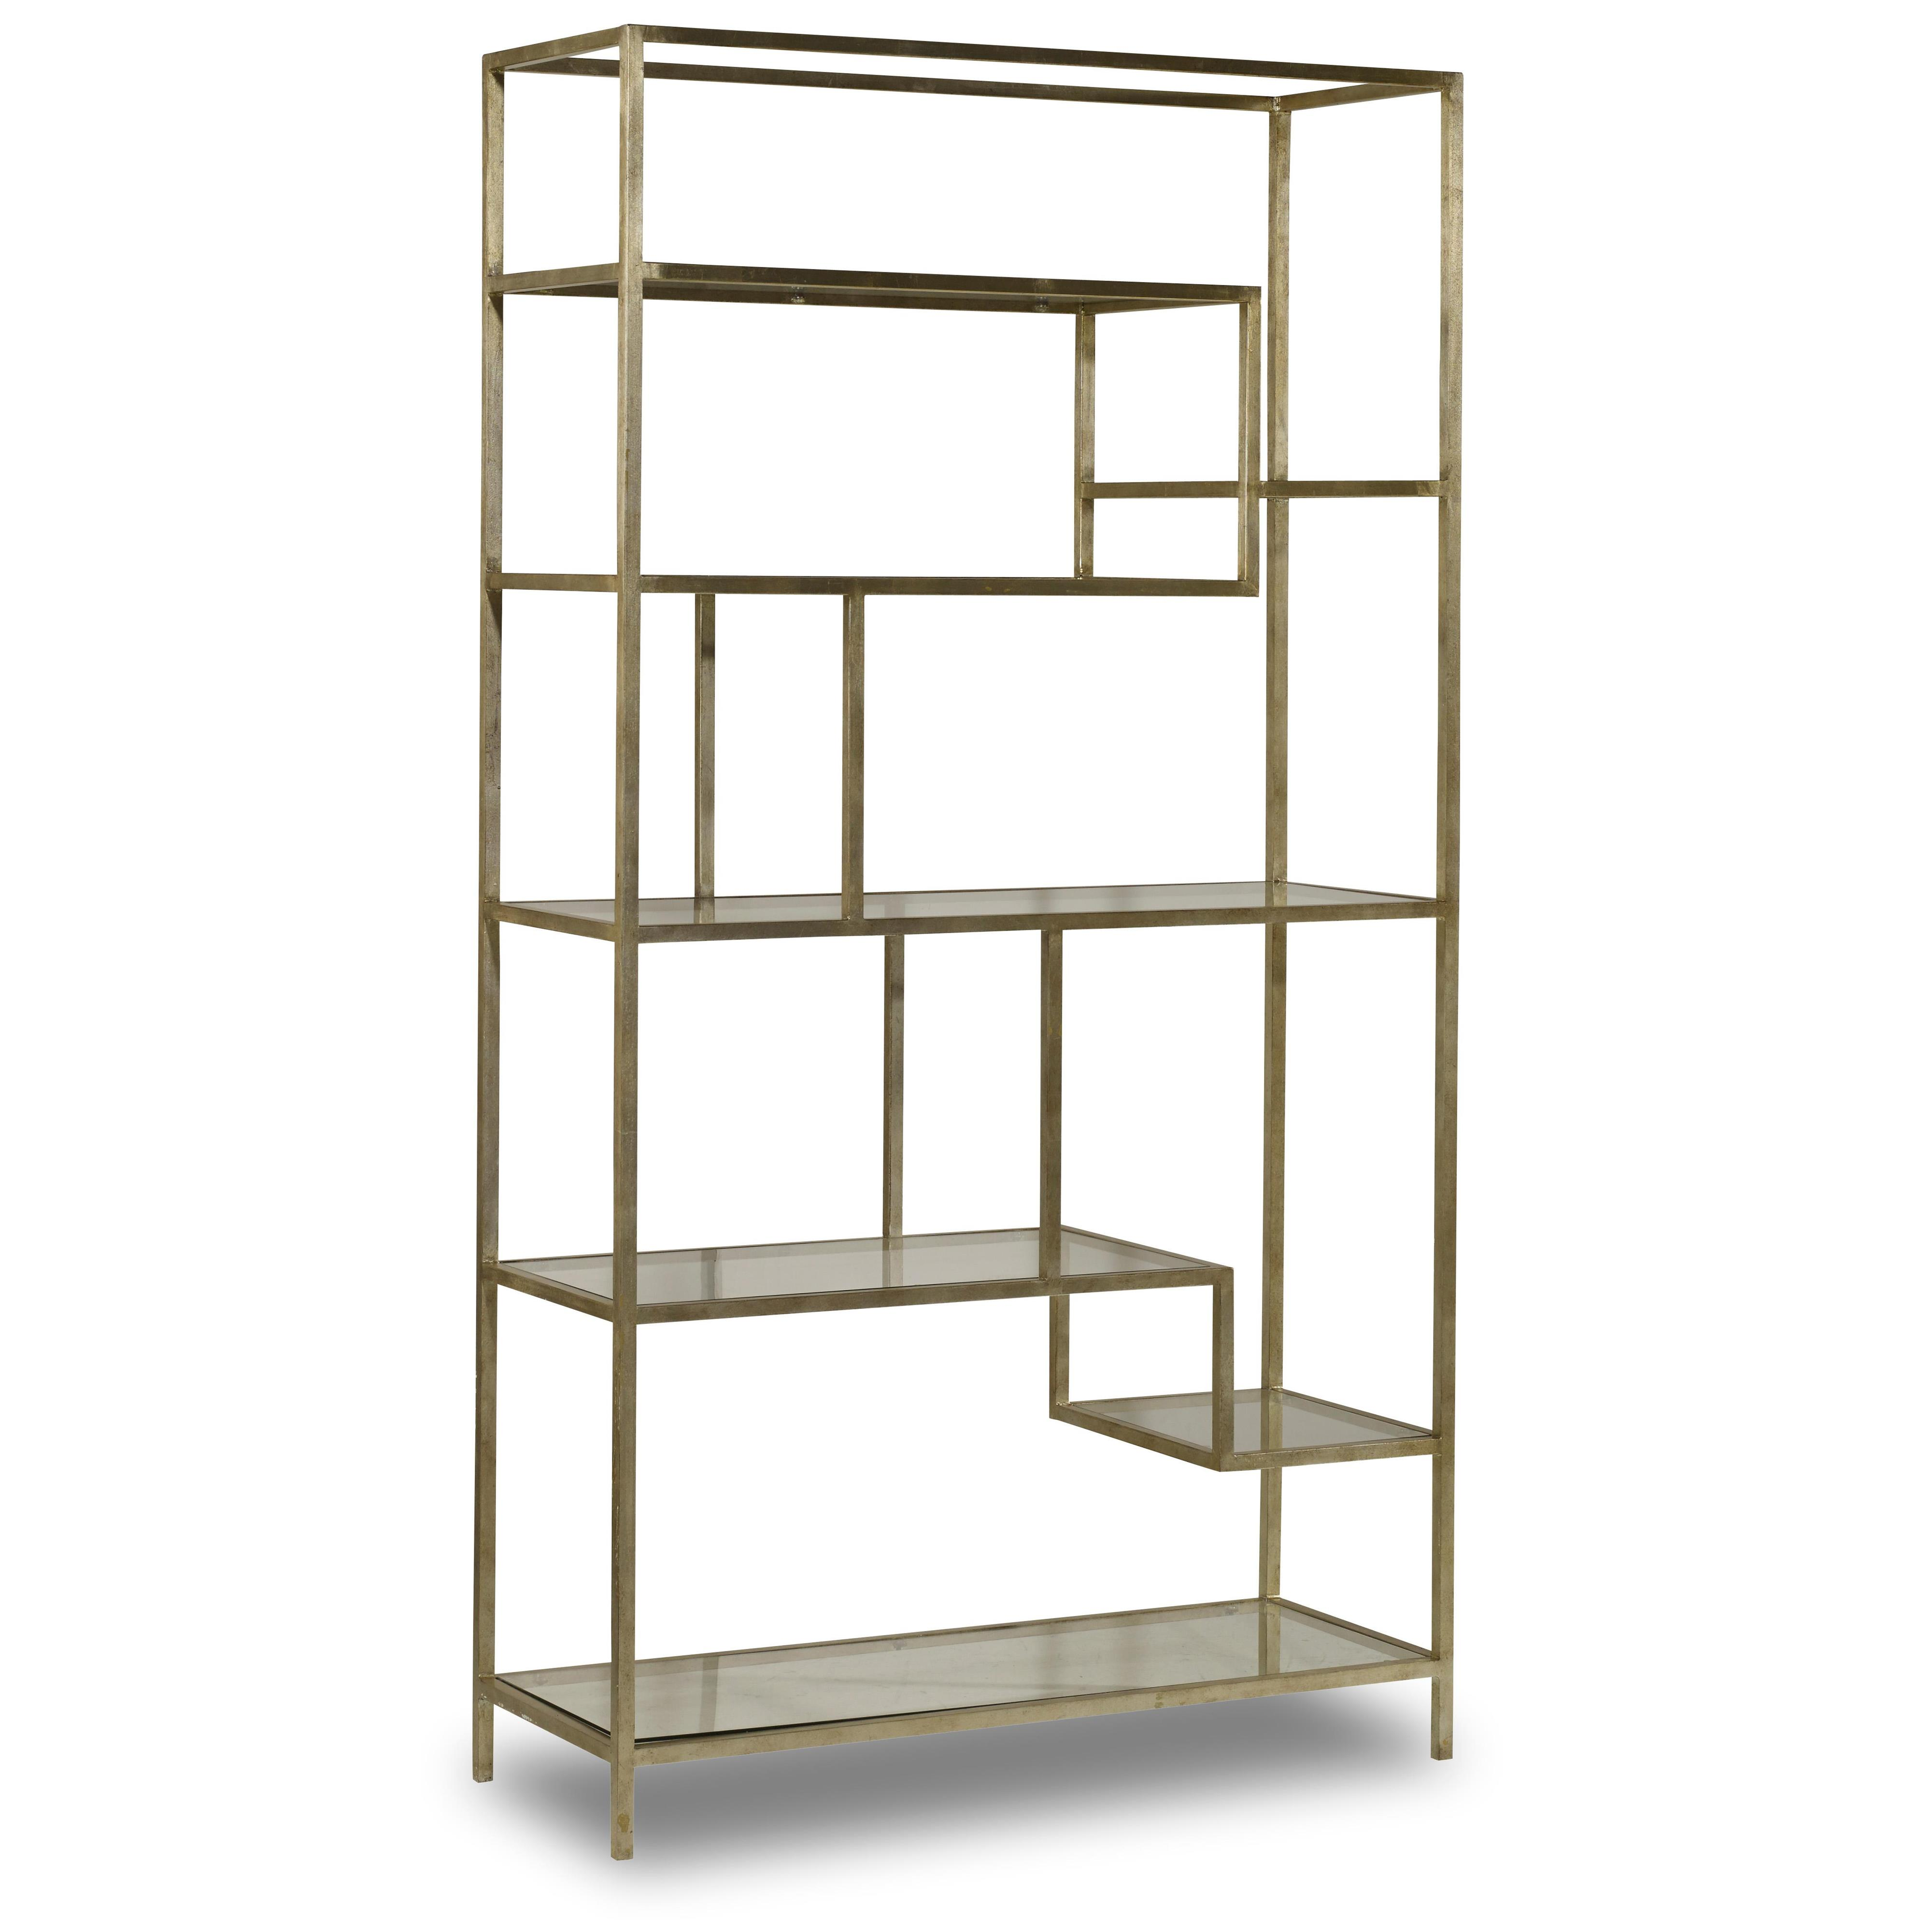 Living Room Accents Etagere by Hooker Furniture at Alison Craig Home Furnishings